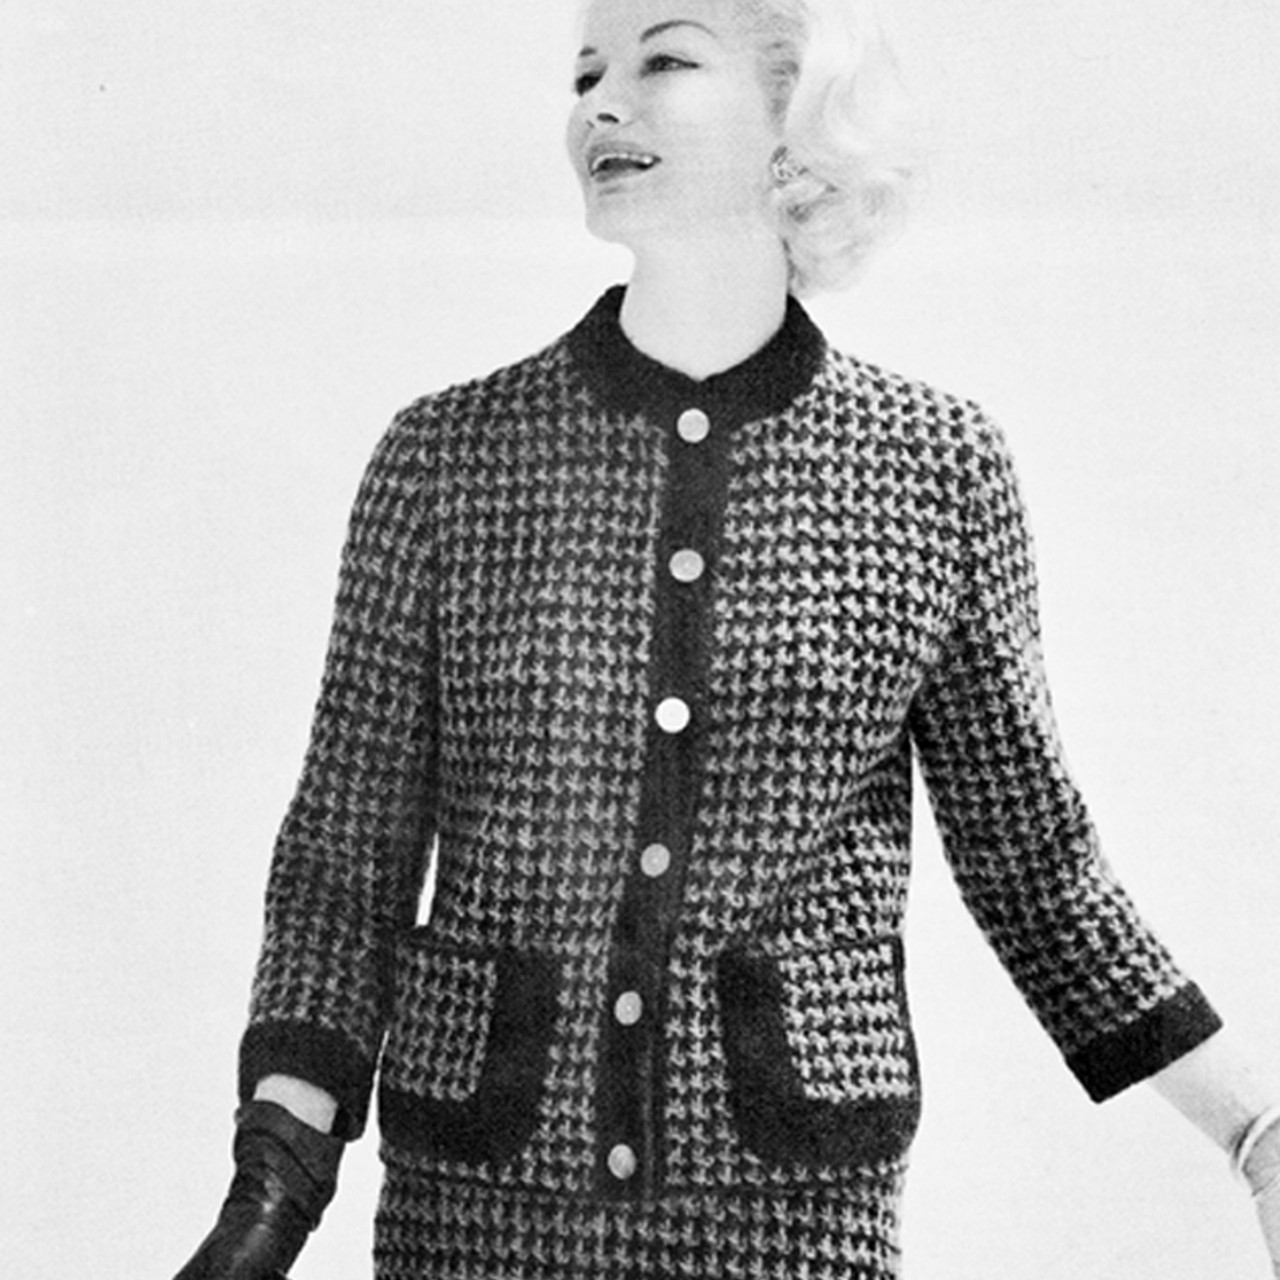 Checked Suit Knitting Pattern, Vintage 1950s